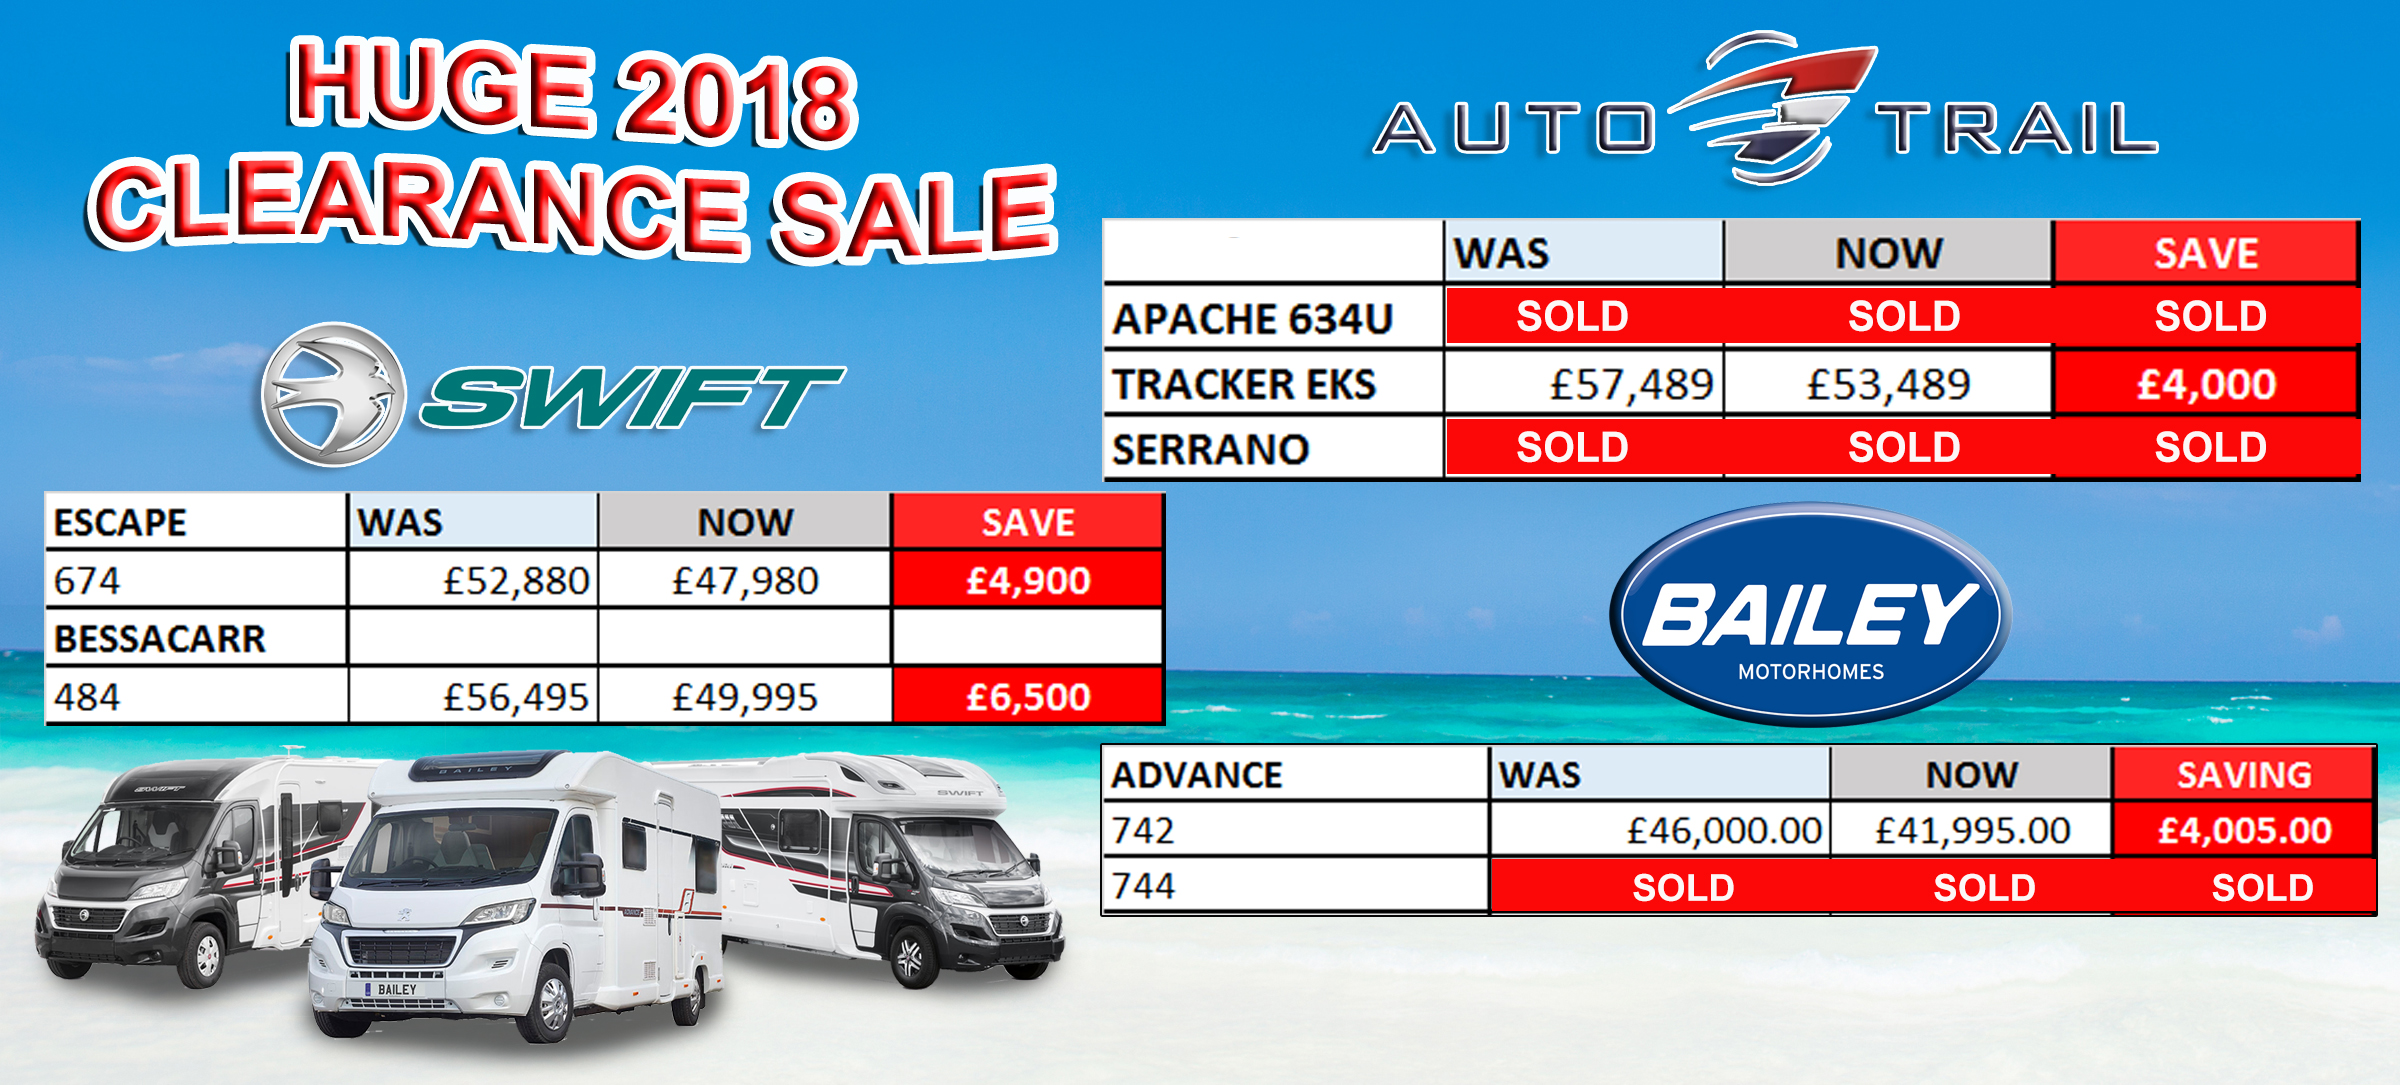 Clearance2018 motorhomes UPDATED2